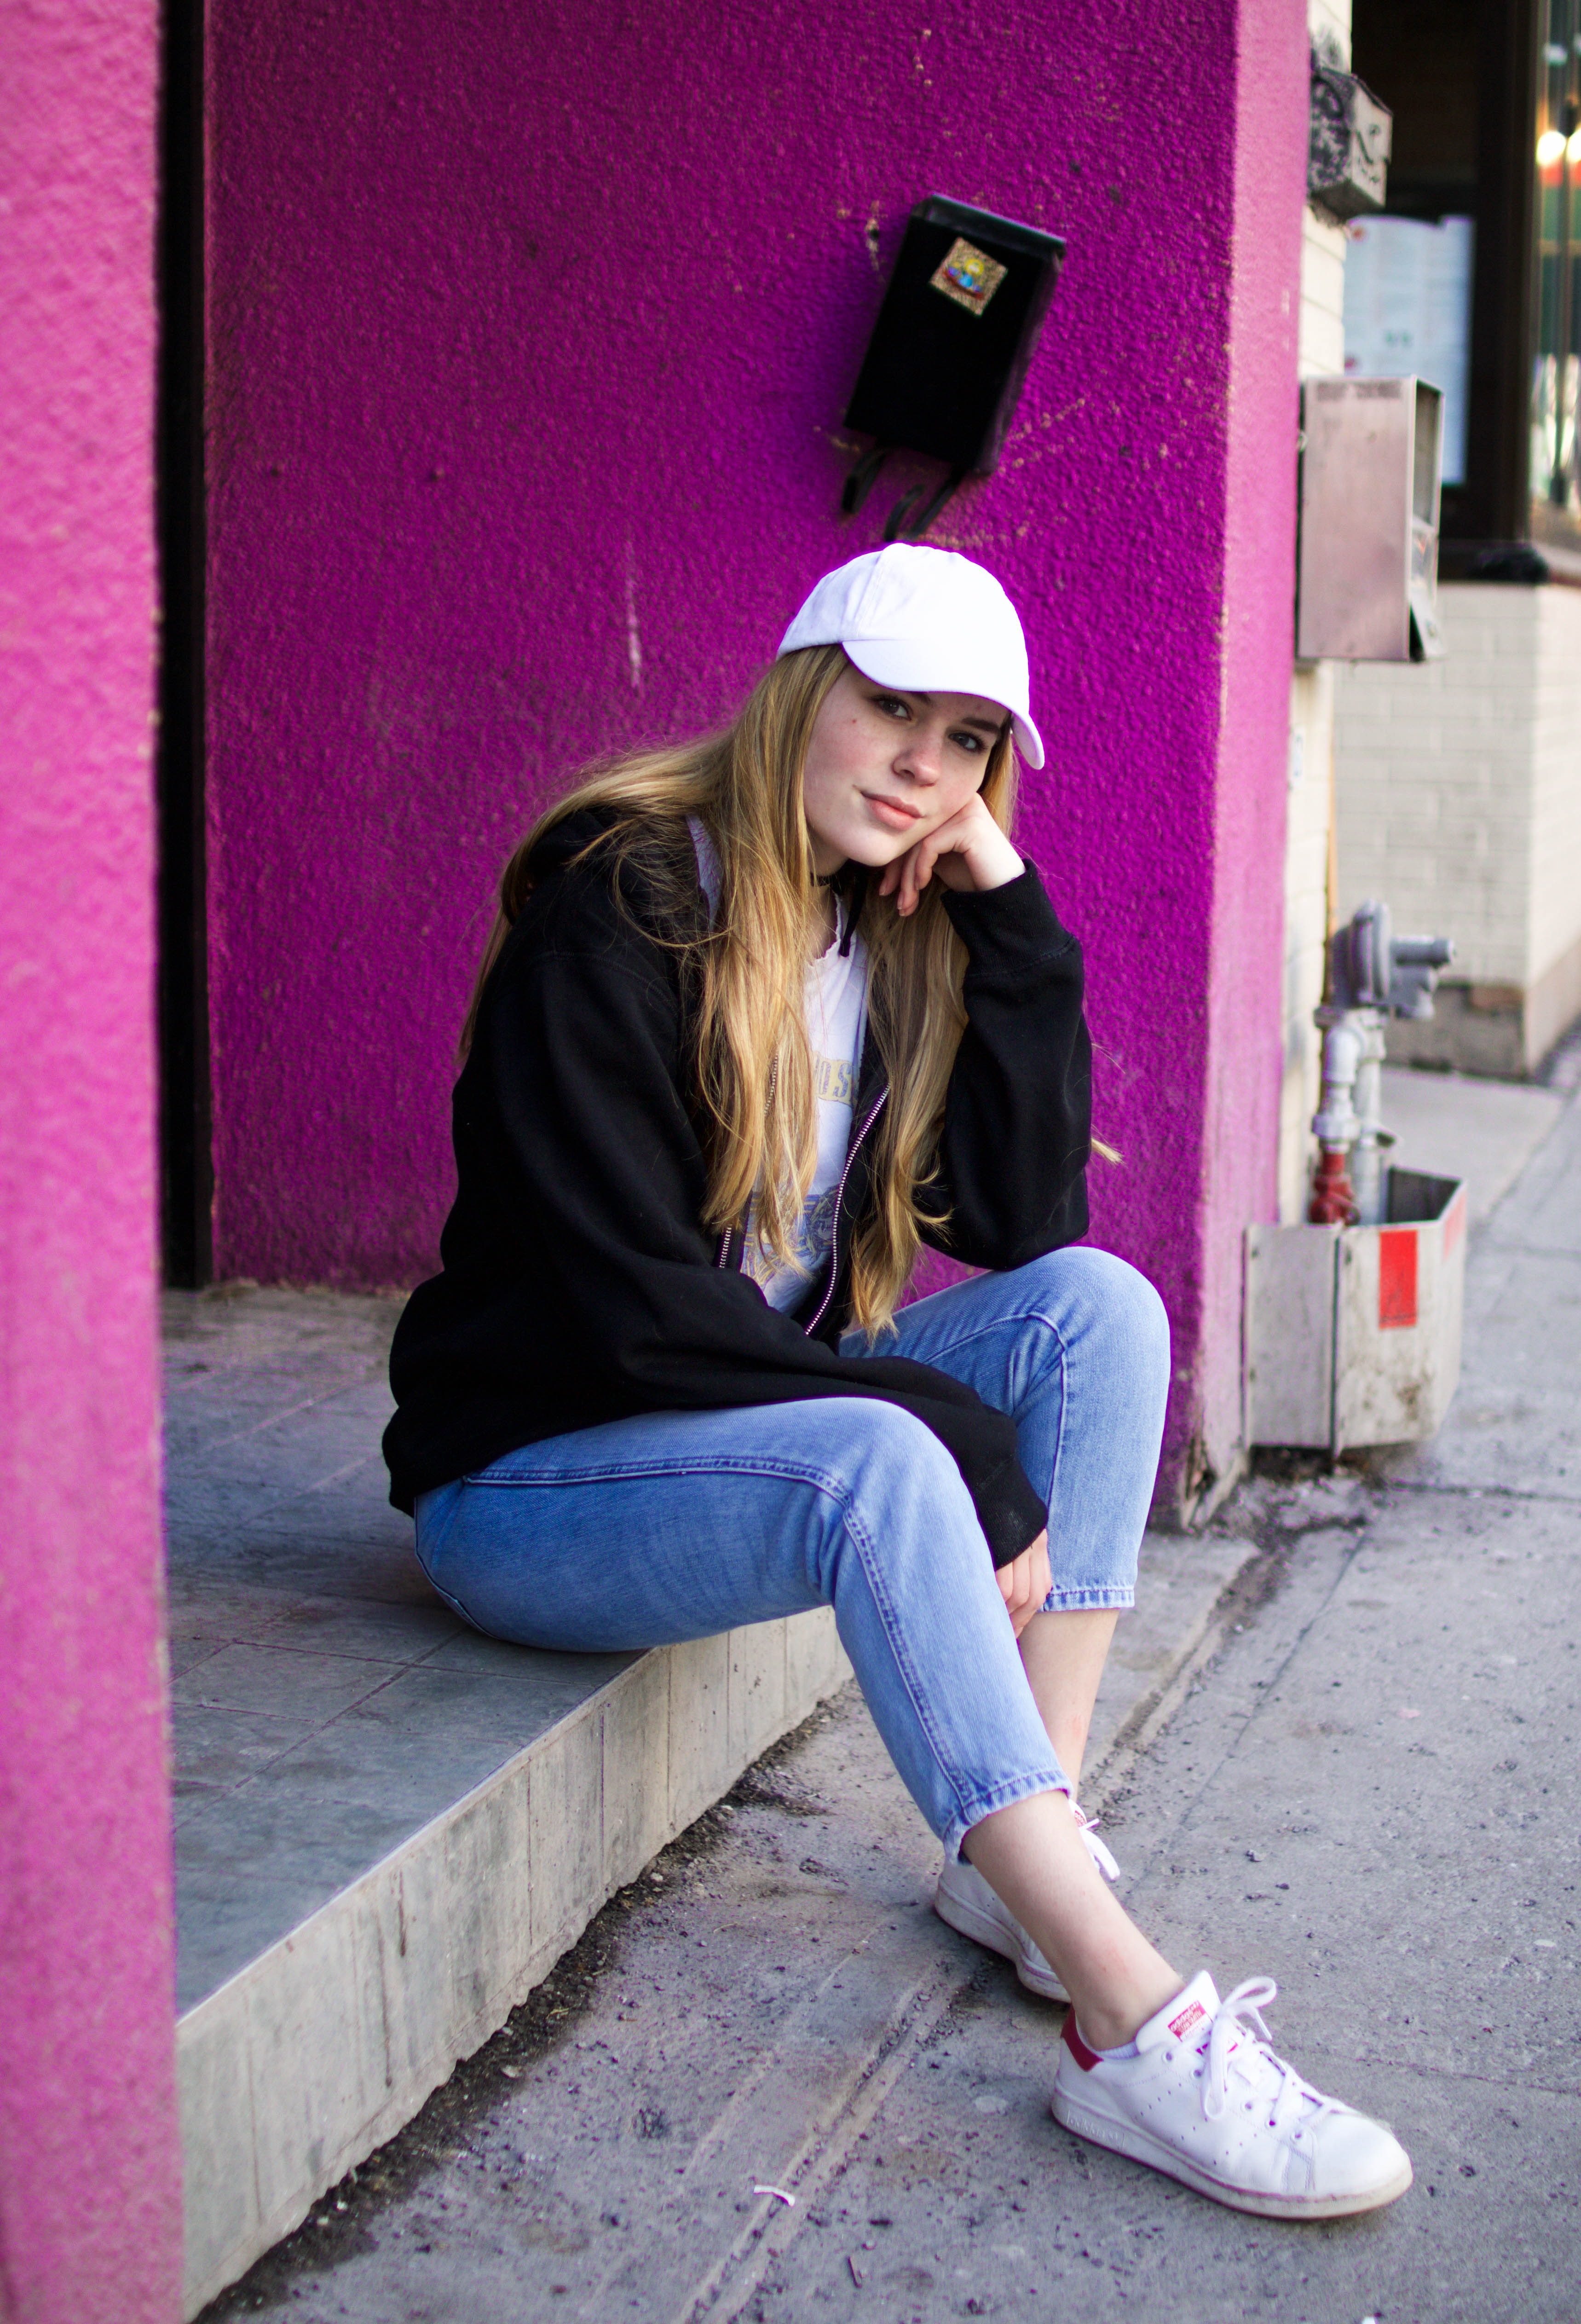 A pretty blonde woman sitting on a step outside with her hand against her cheek.